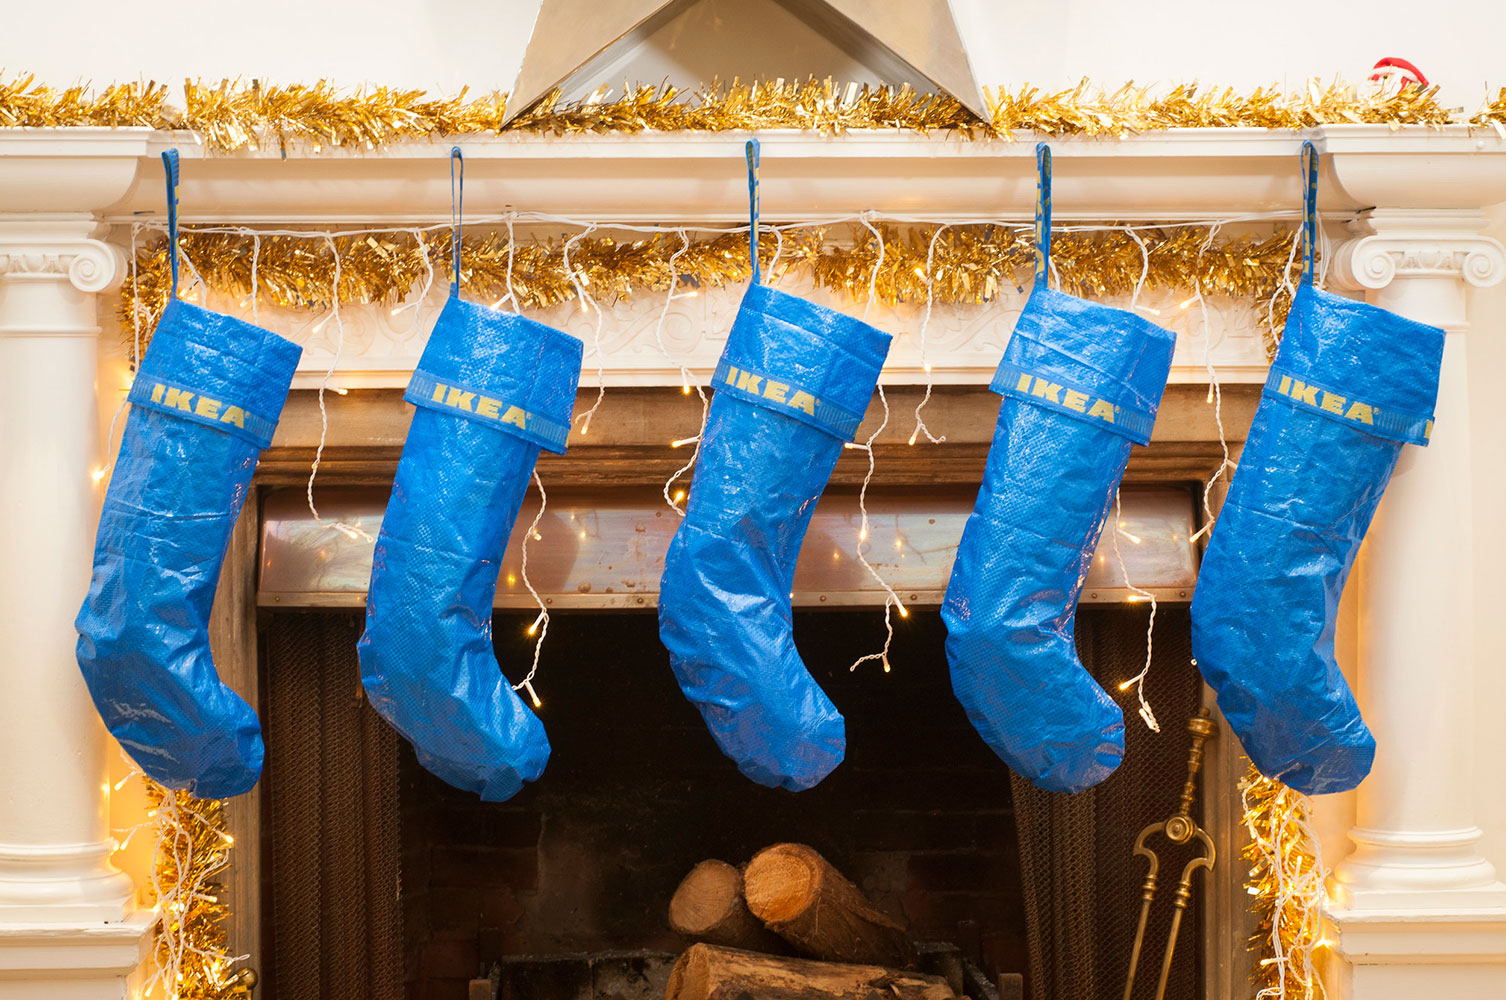 IKEA Bag Holiday Stockings Exist for Superfans